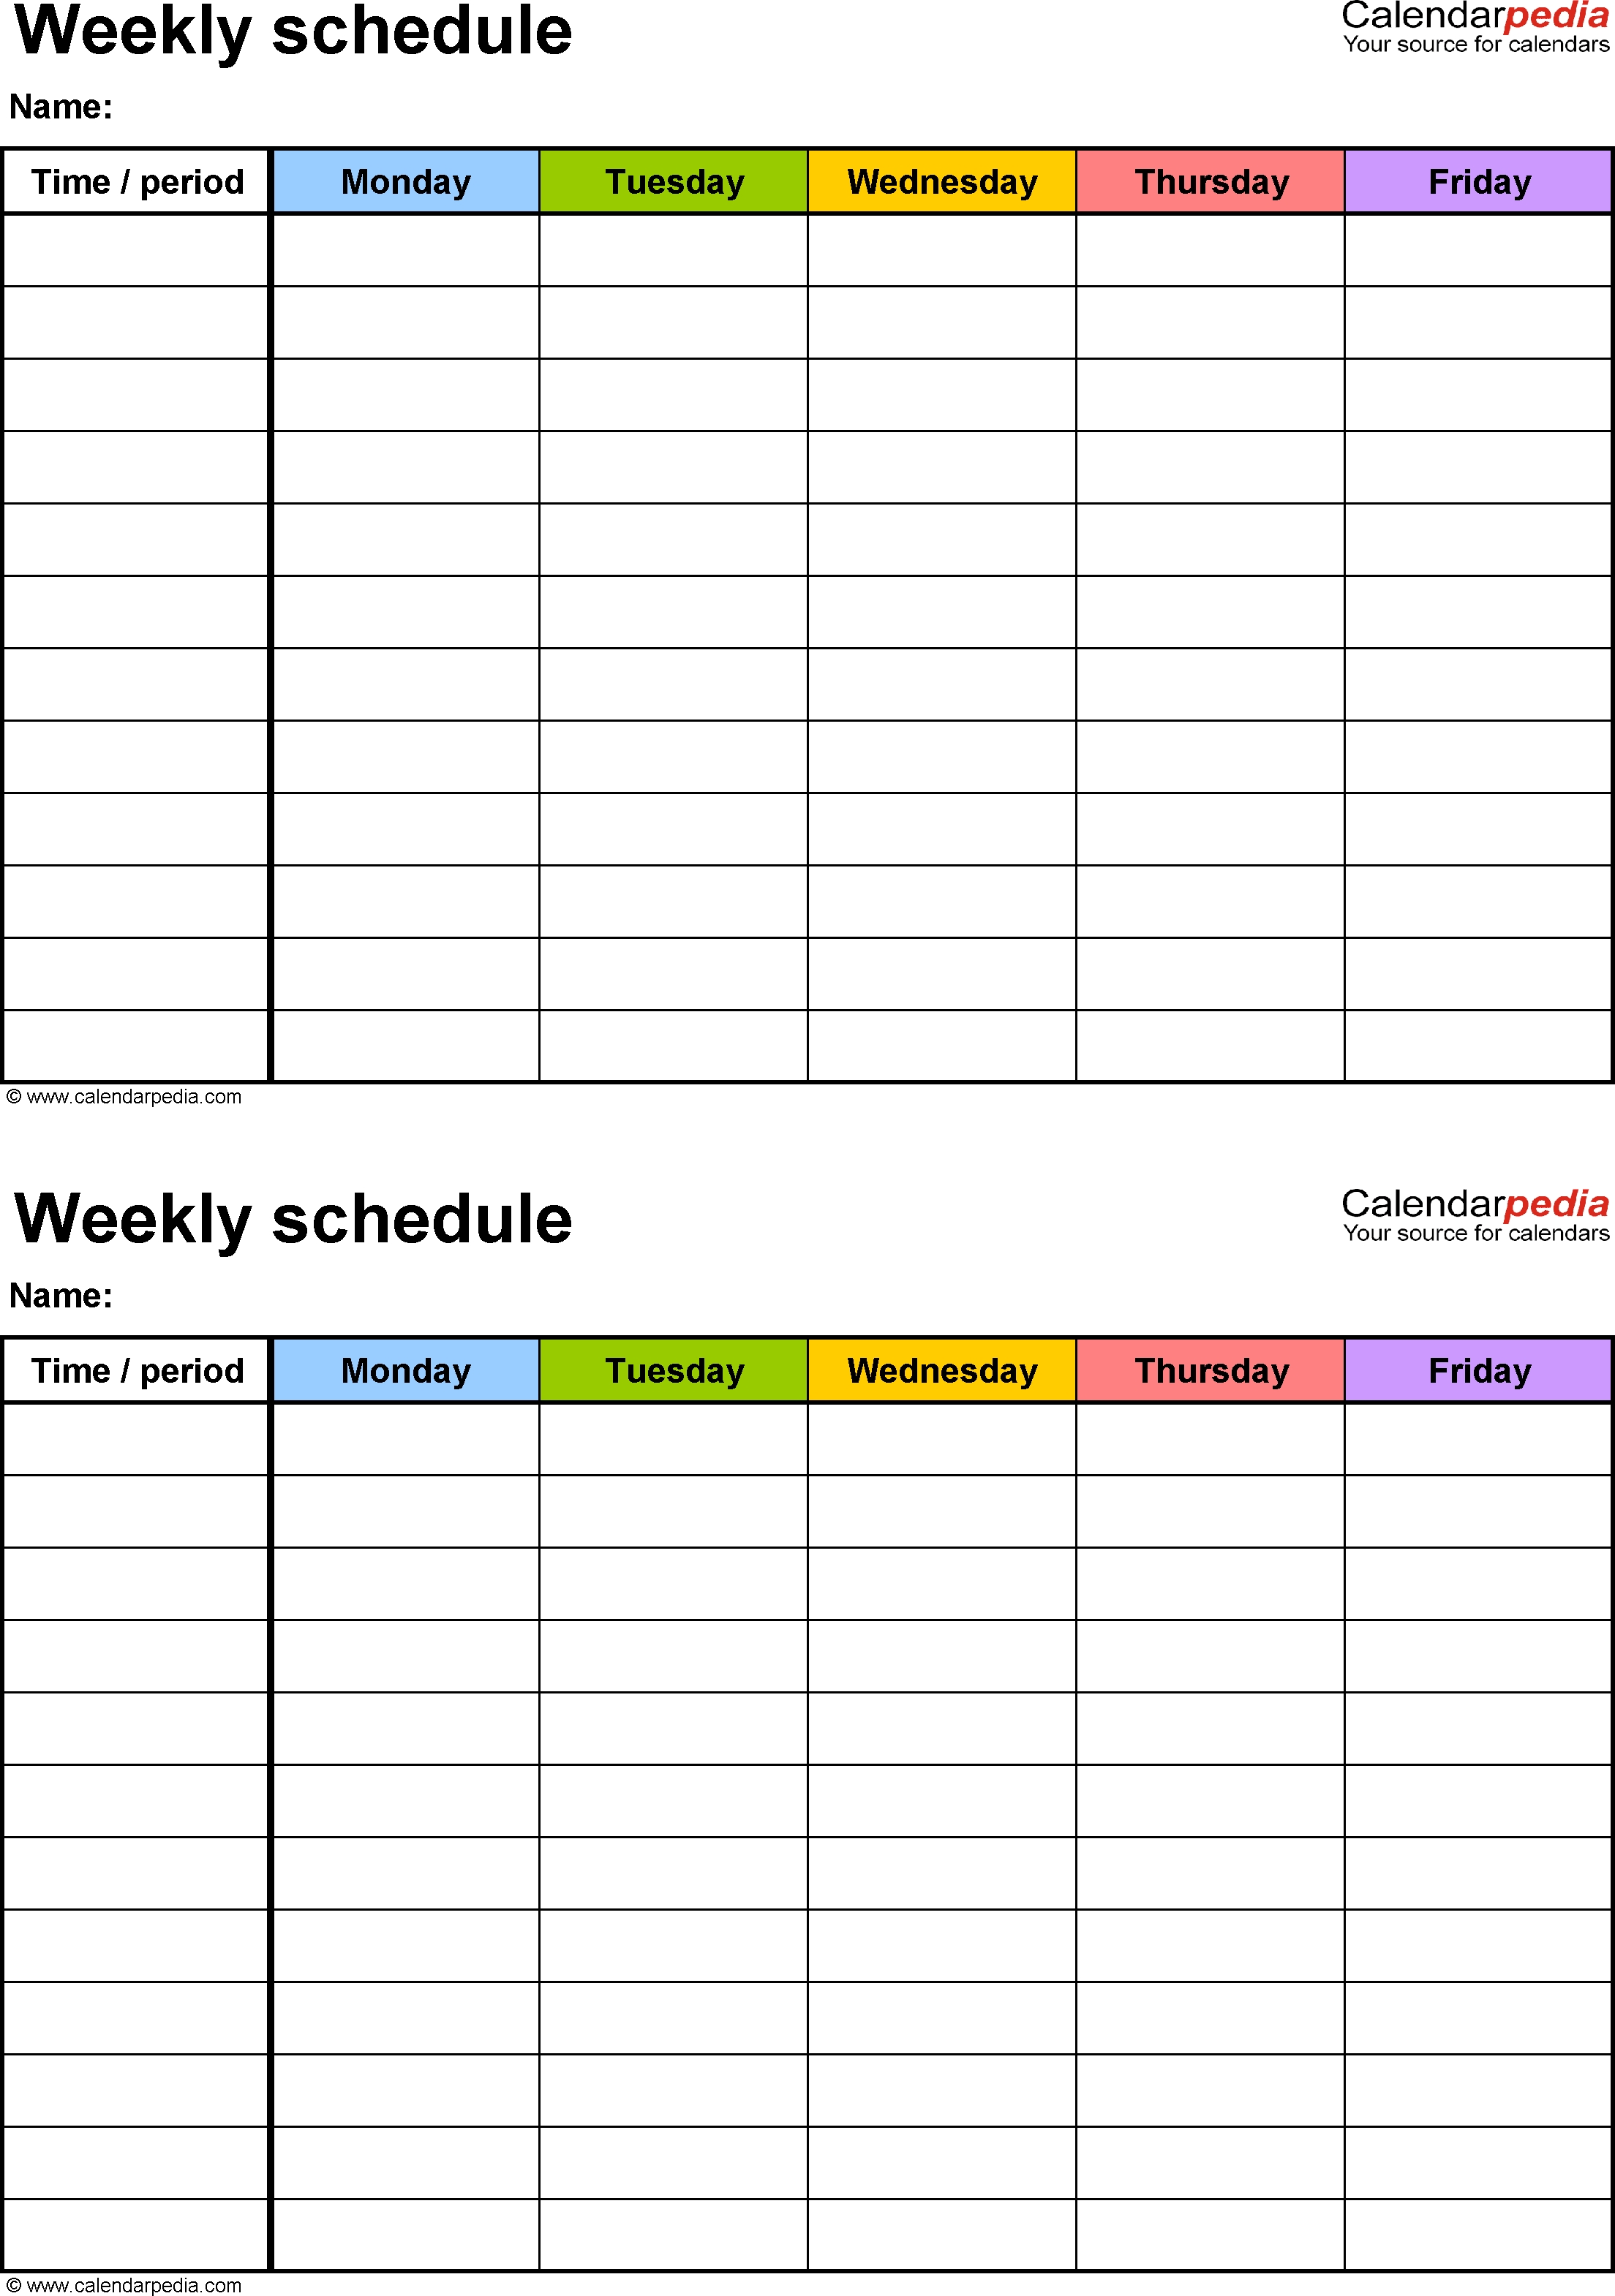 Free Weekly Schedule Templates For Excel - 18 Templates  Free Printable Full Page Calendar With Time Slot